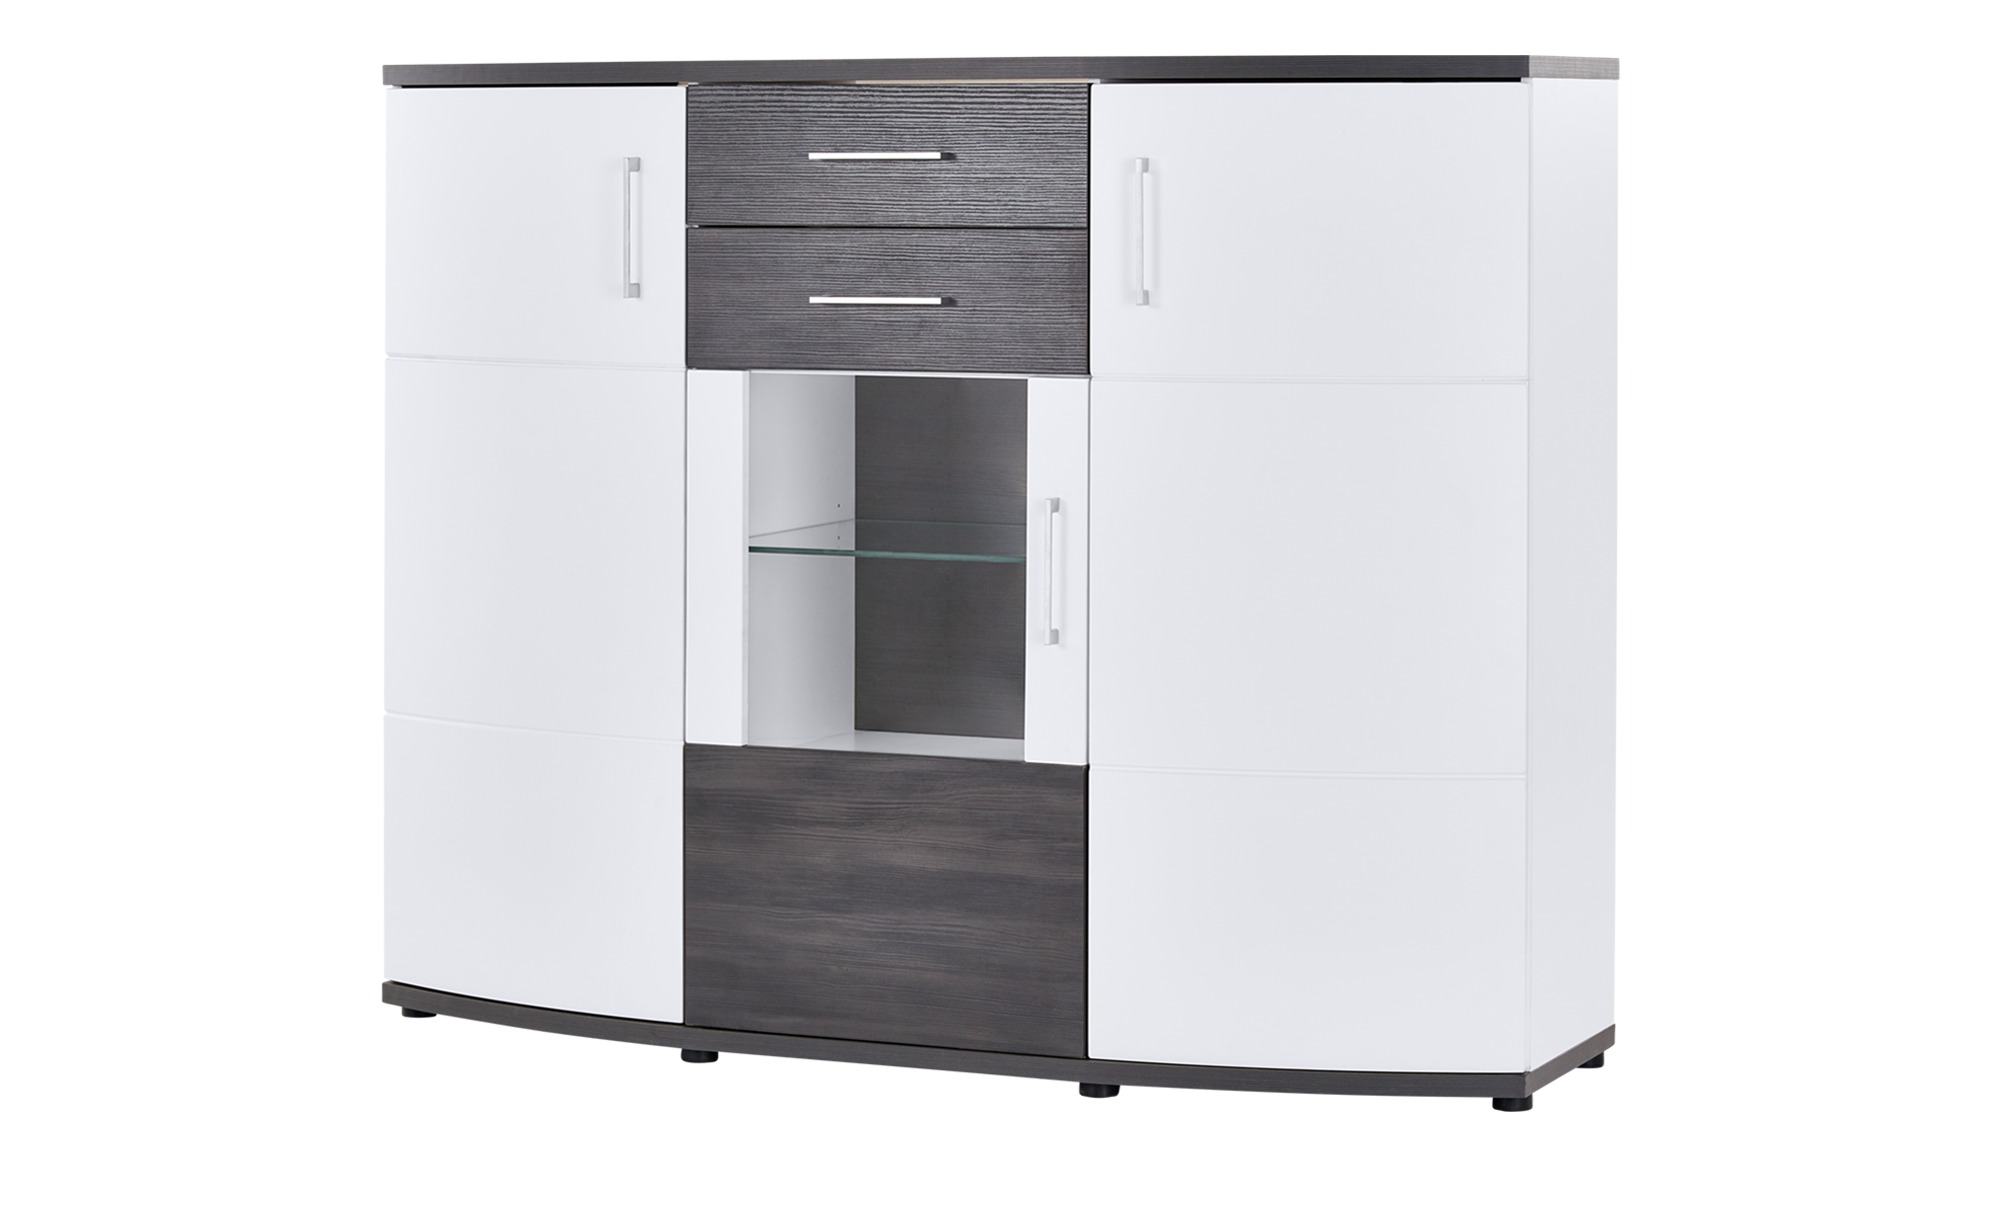 Highboard Belano Masse Cm B 160 H 130 T 43 Kommoden